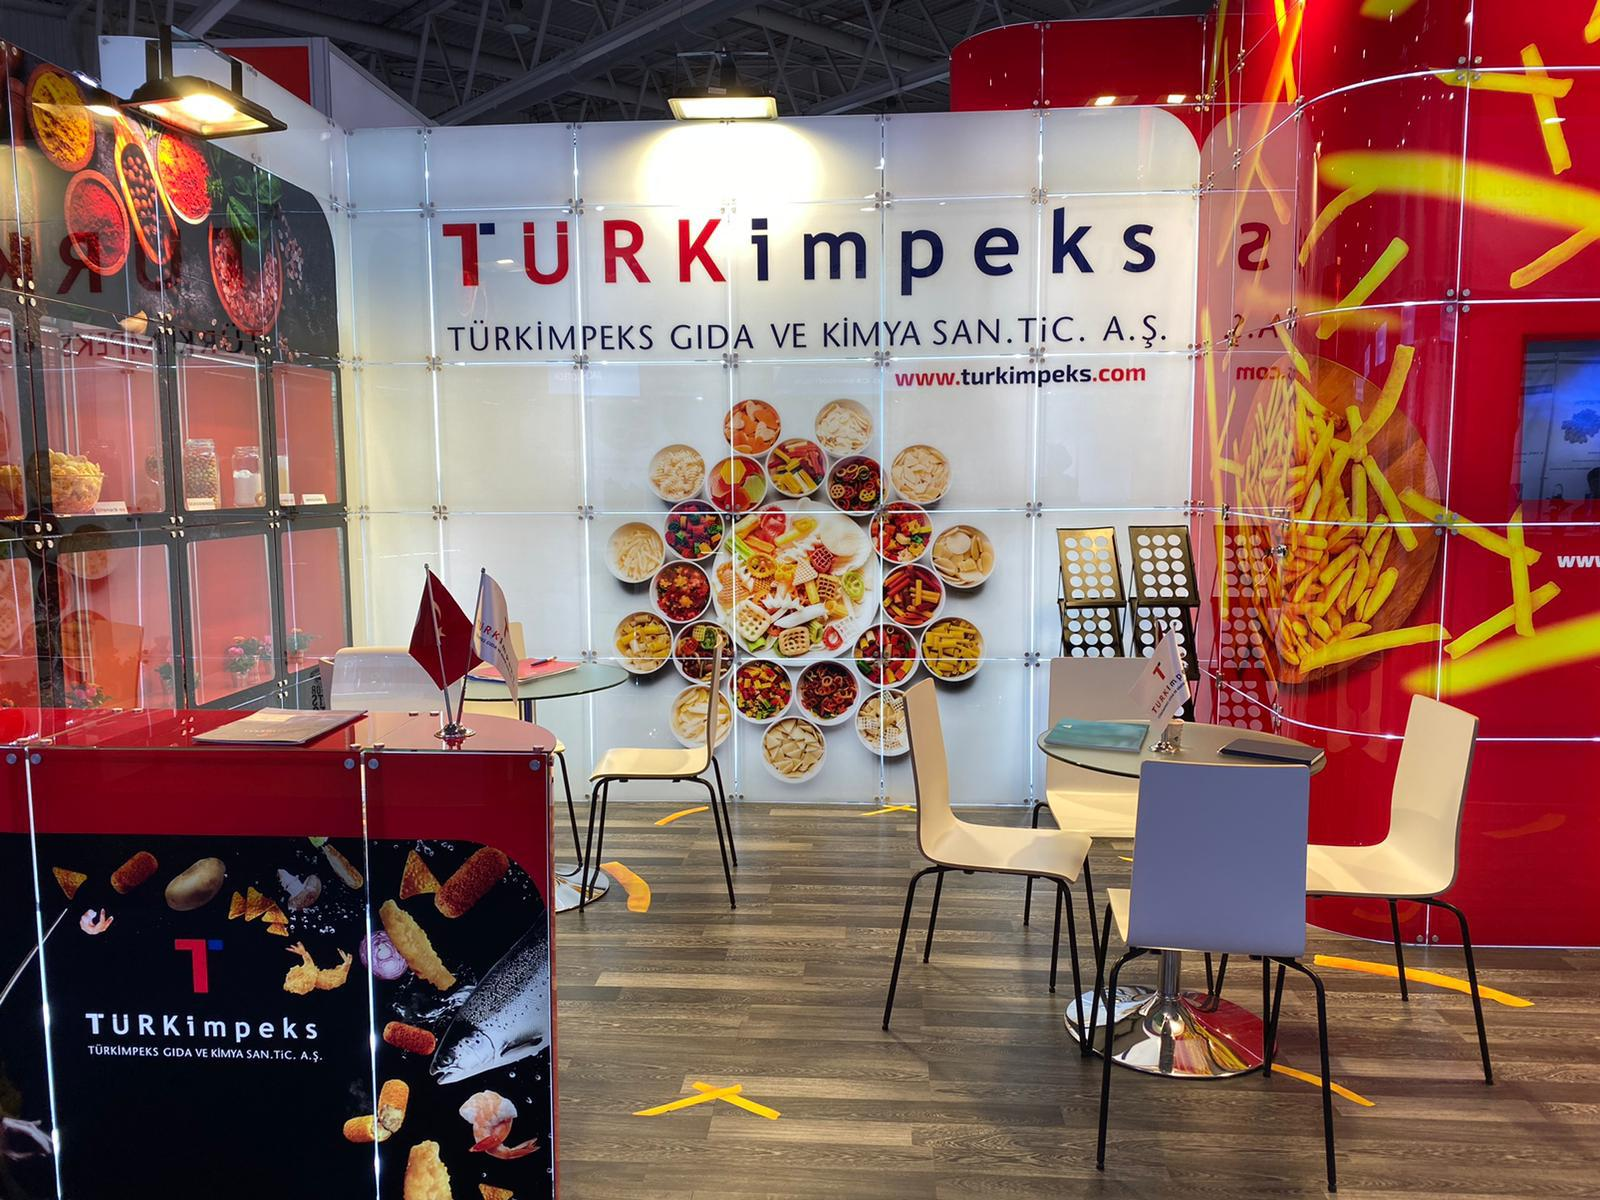 Food ingredents Europe - 3-5 December 2019 - Stand 7Q161